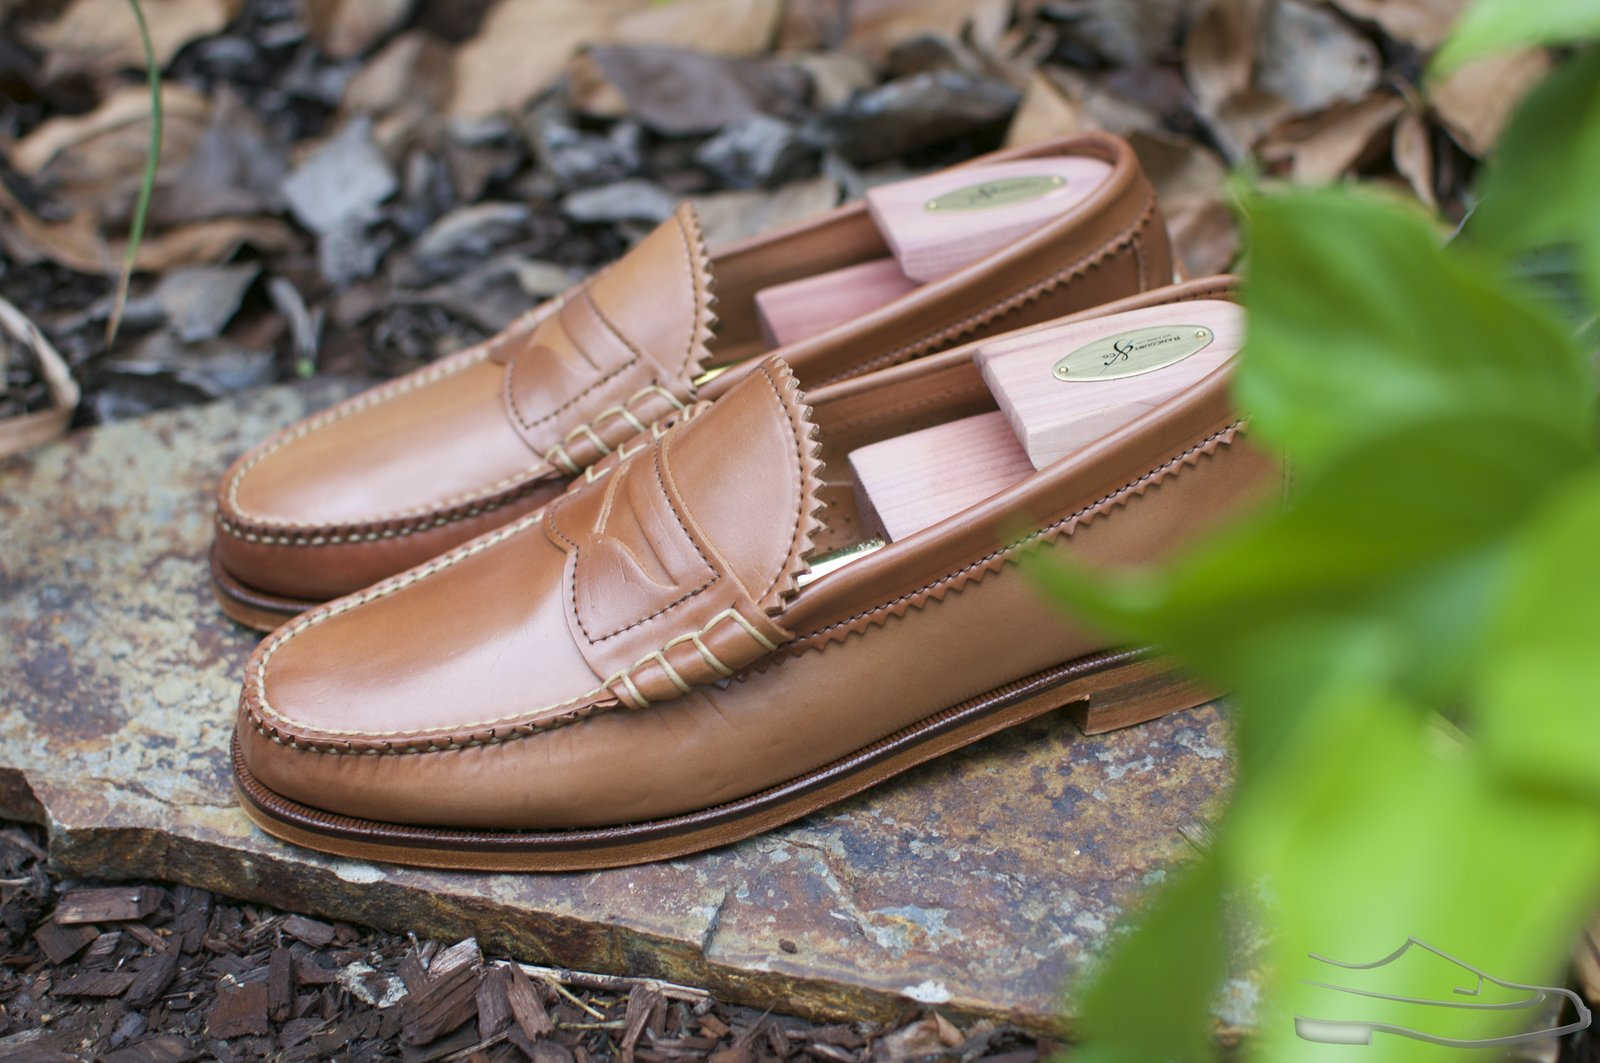 Rancourt Natural Shell Cordovan Beefroll Loafers - 2020-09-25 - 3.jpg